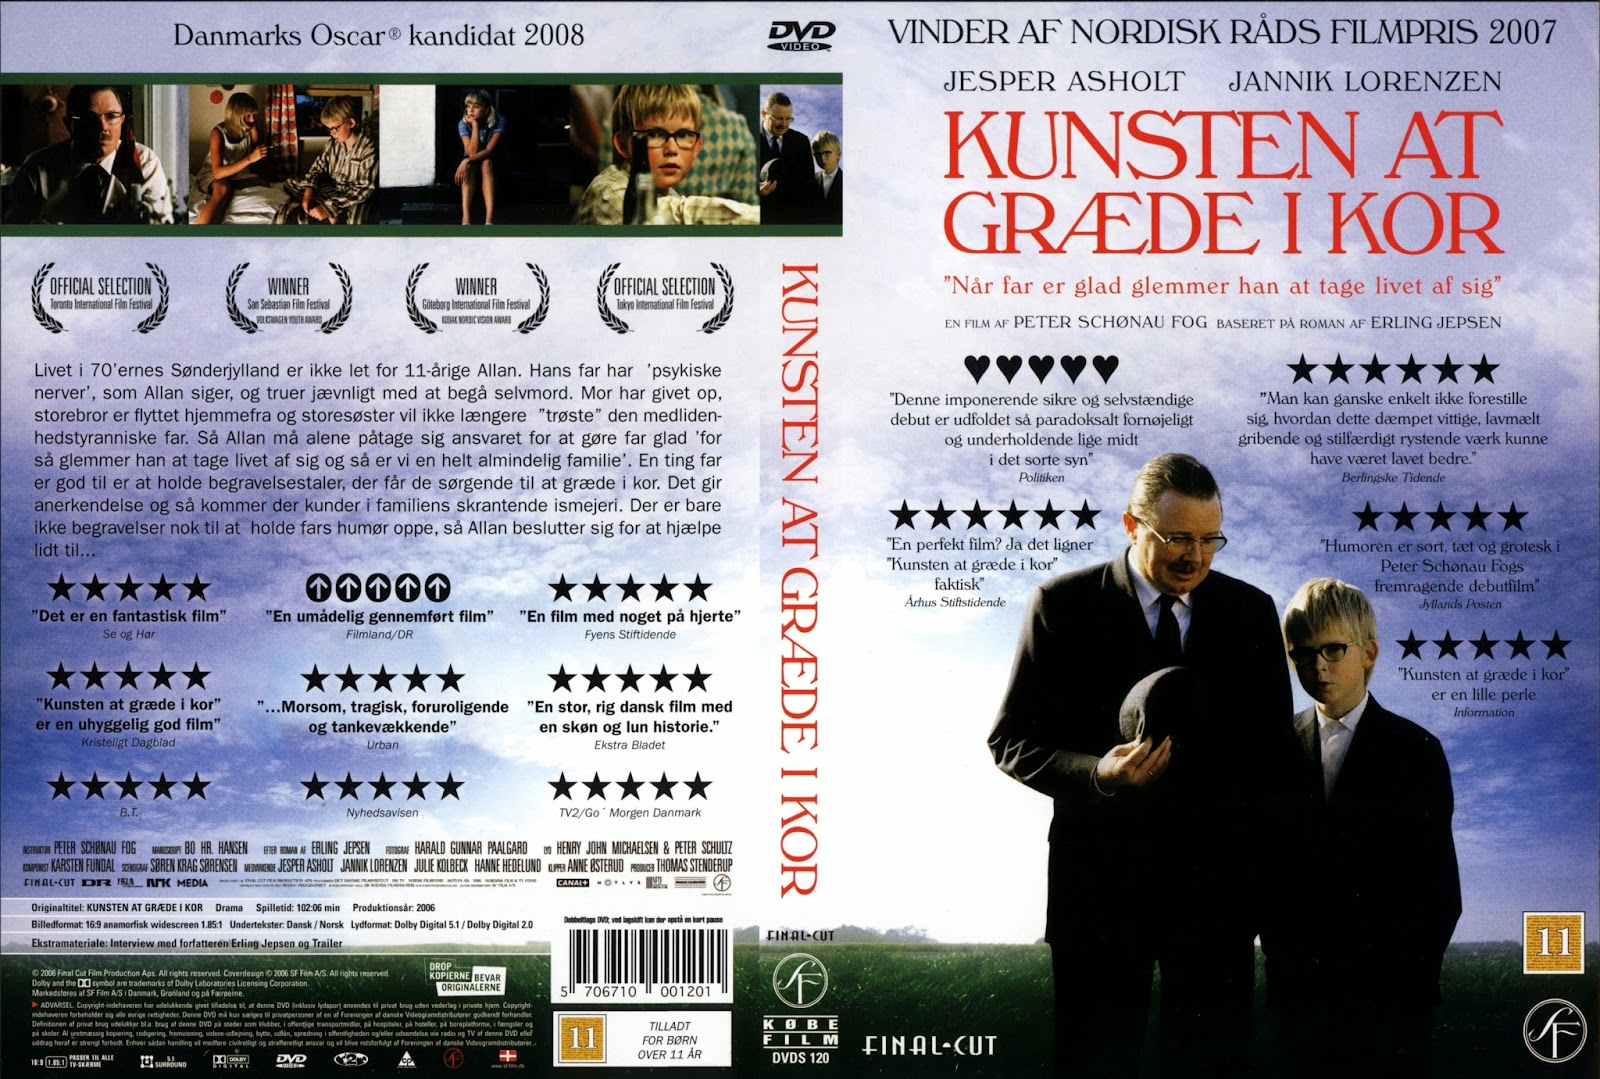 Искусство плача / Kunsten at græde i kor / The Art of Crying.